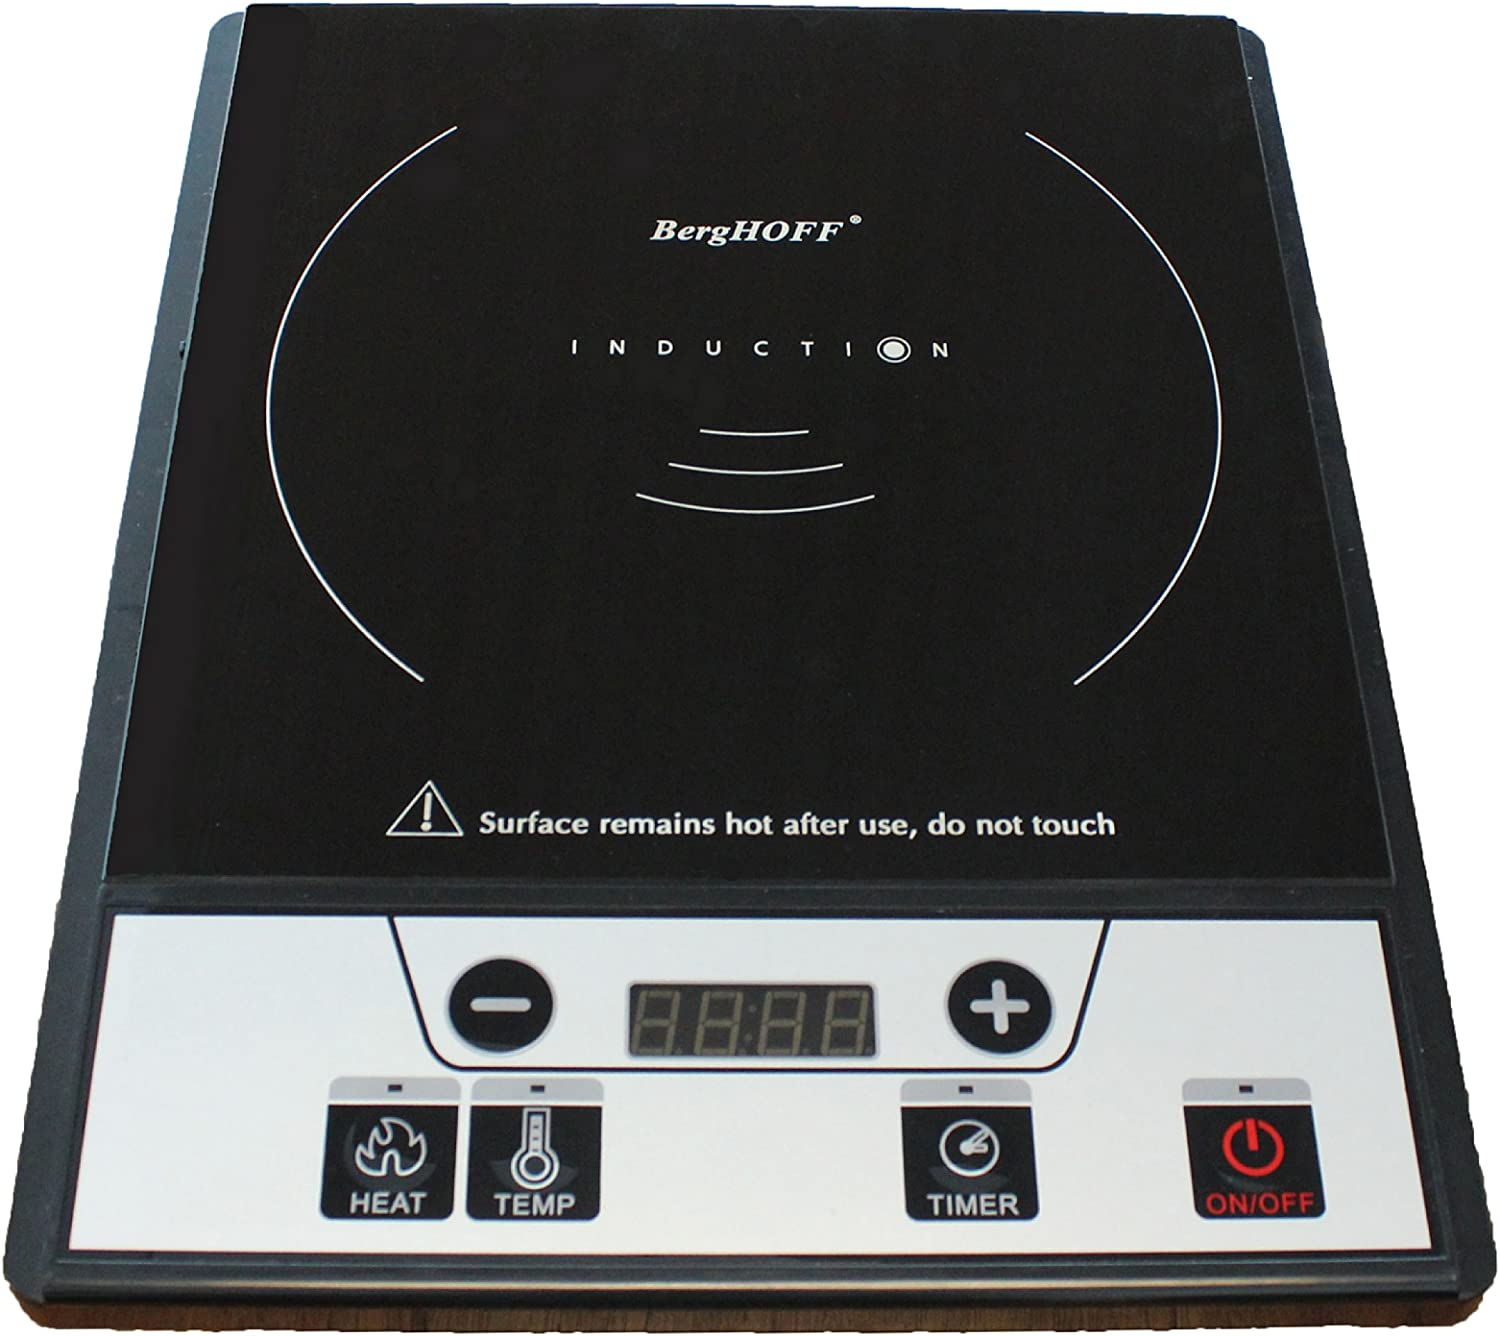 BergHOFF 2216760 Tronic Power Induction Stove, Black